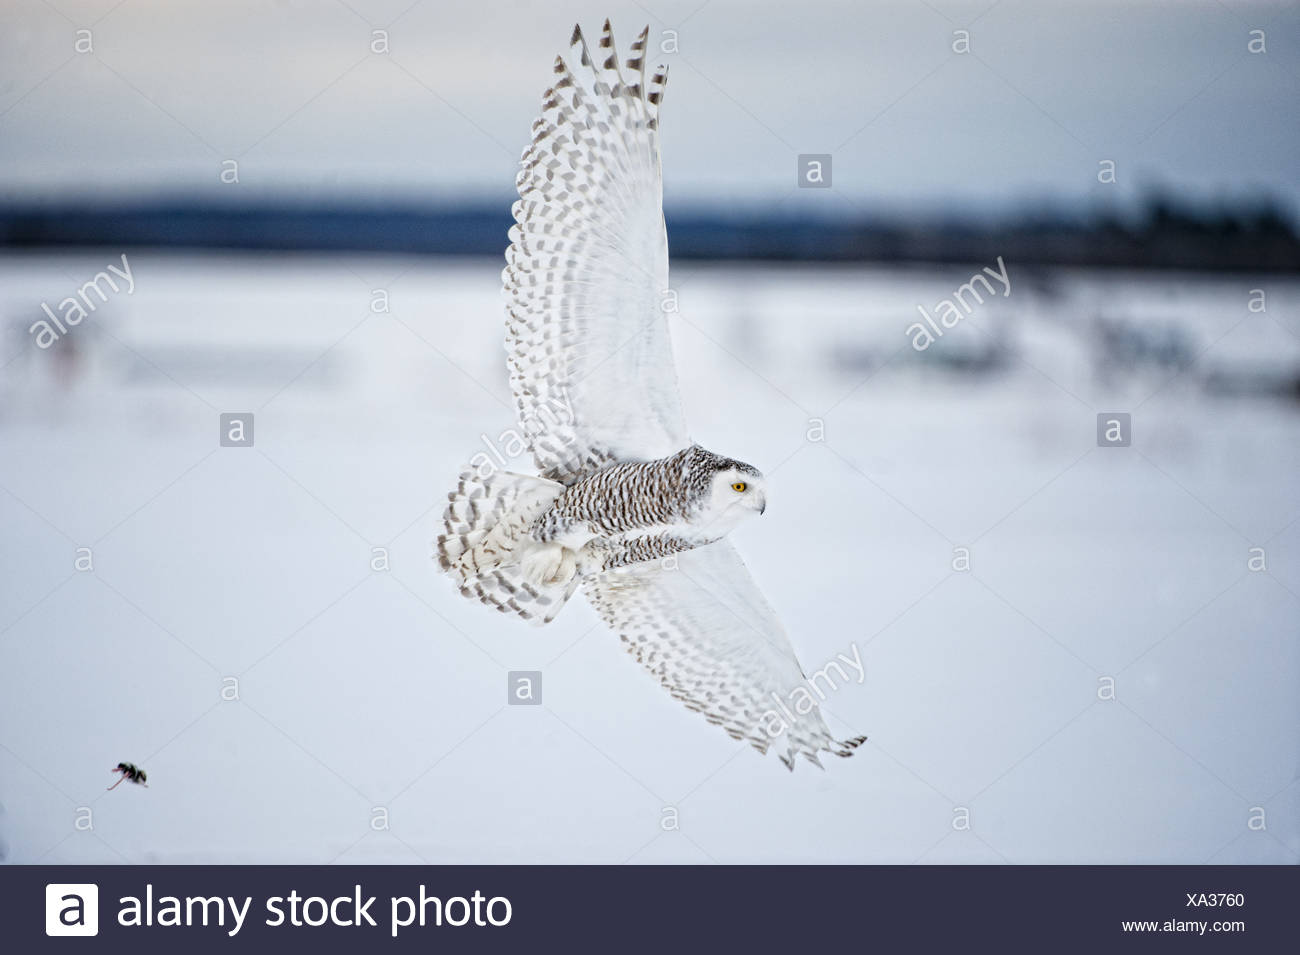 Female Snowy Owl in flight over snow, Saint-Barthelemy, Quebec, Canada, Winter - Stock Image